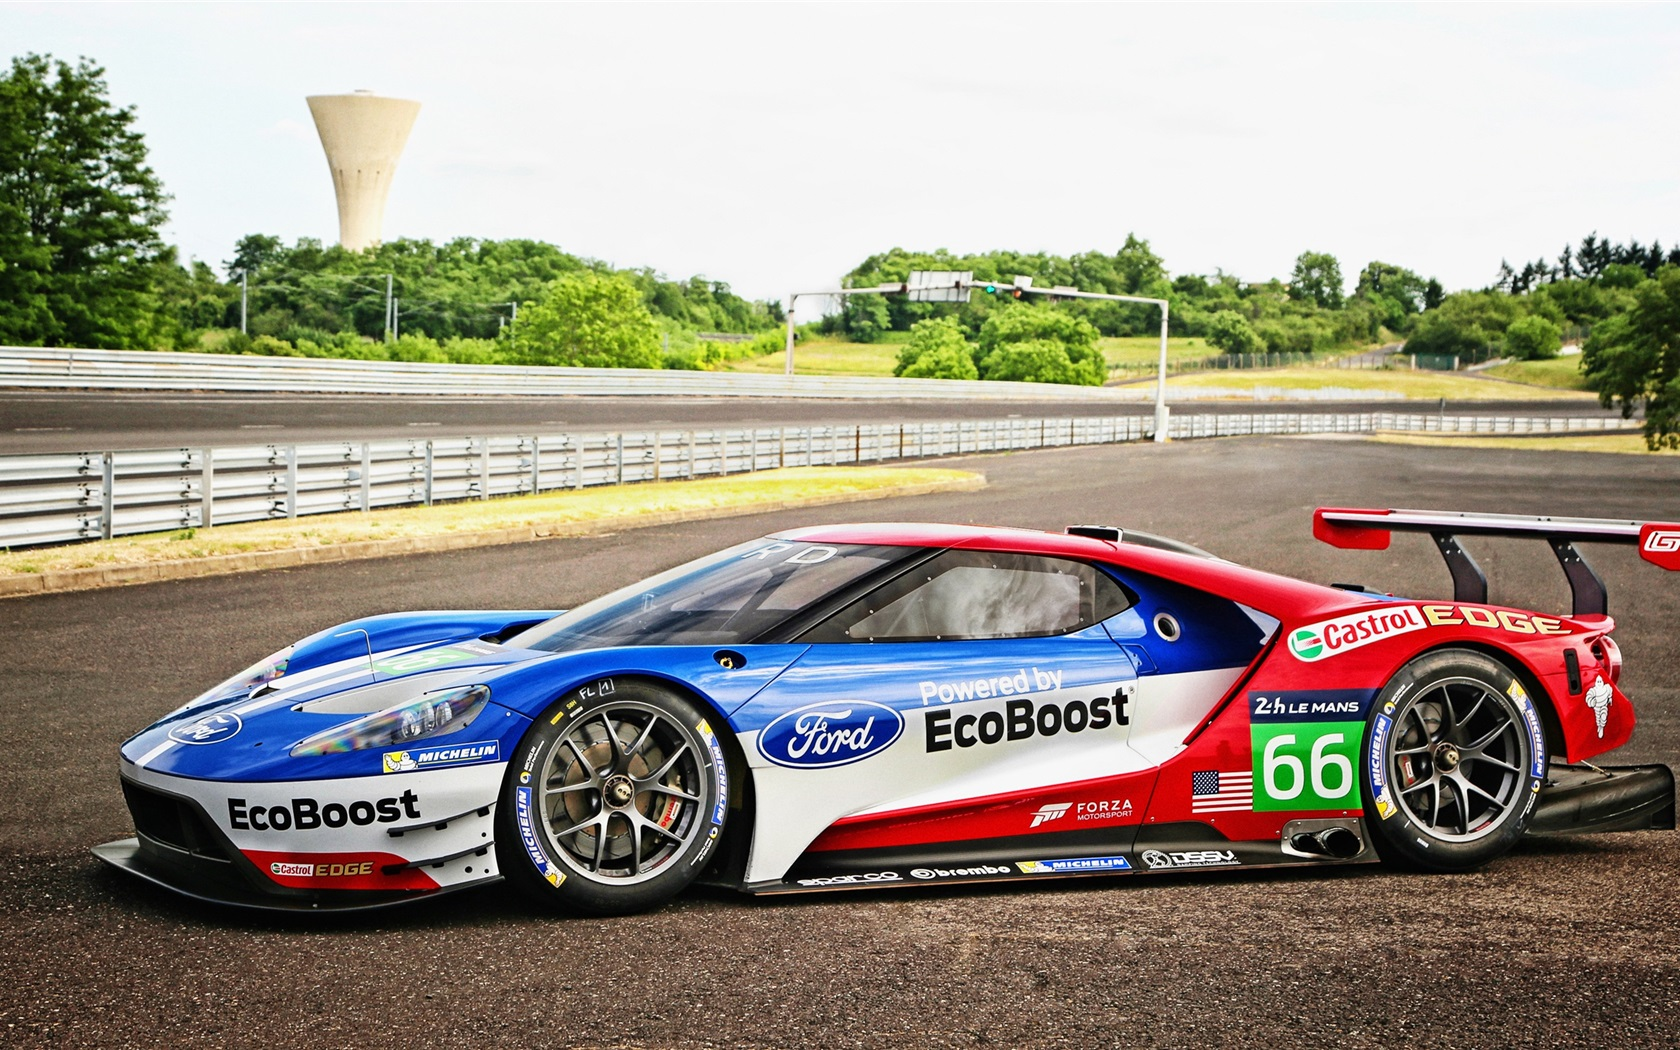 Wallpaper 2016 ford gt race car side view 2560x1440 qhd picture image - Car side view wallpaper ...